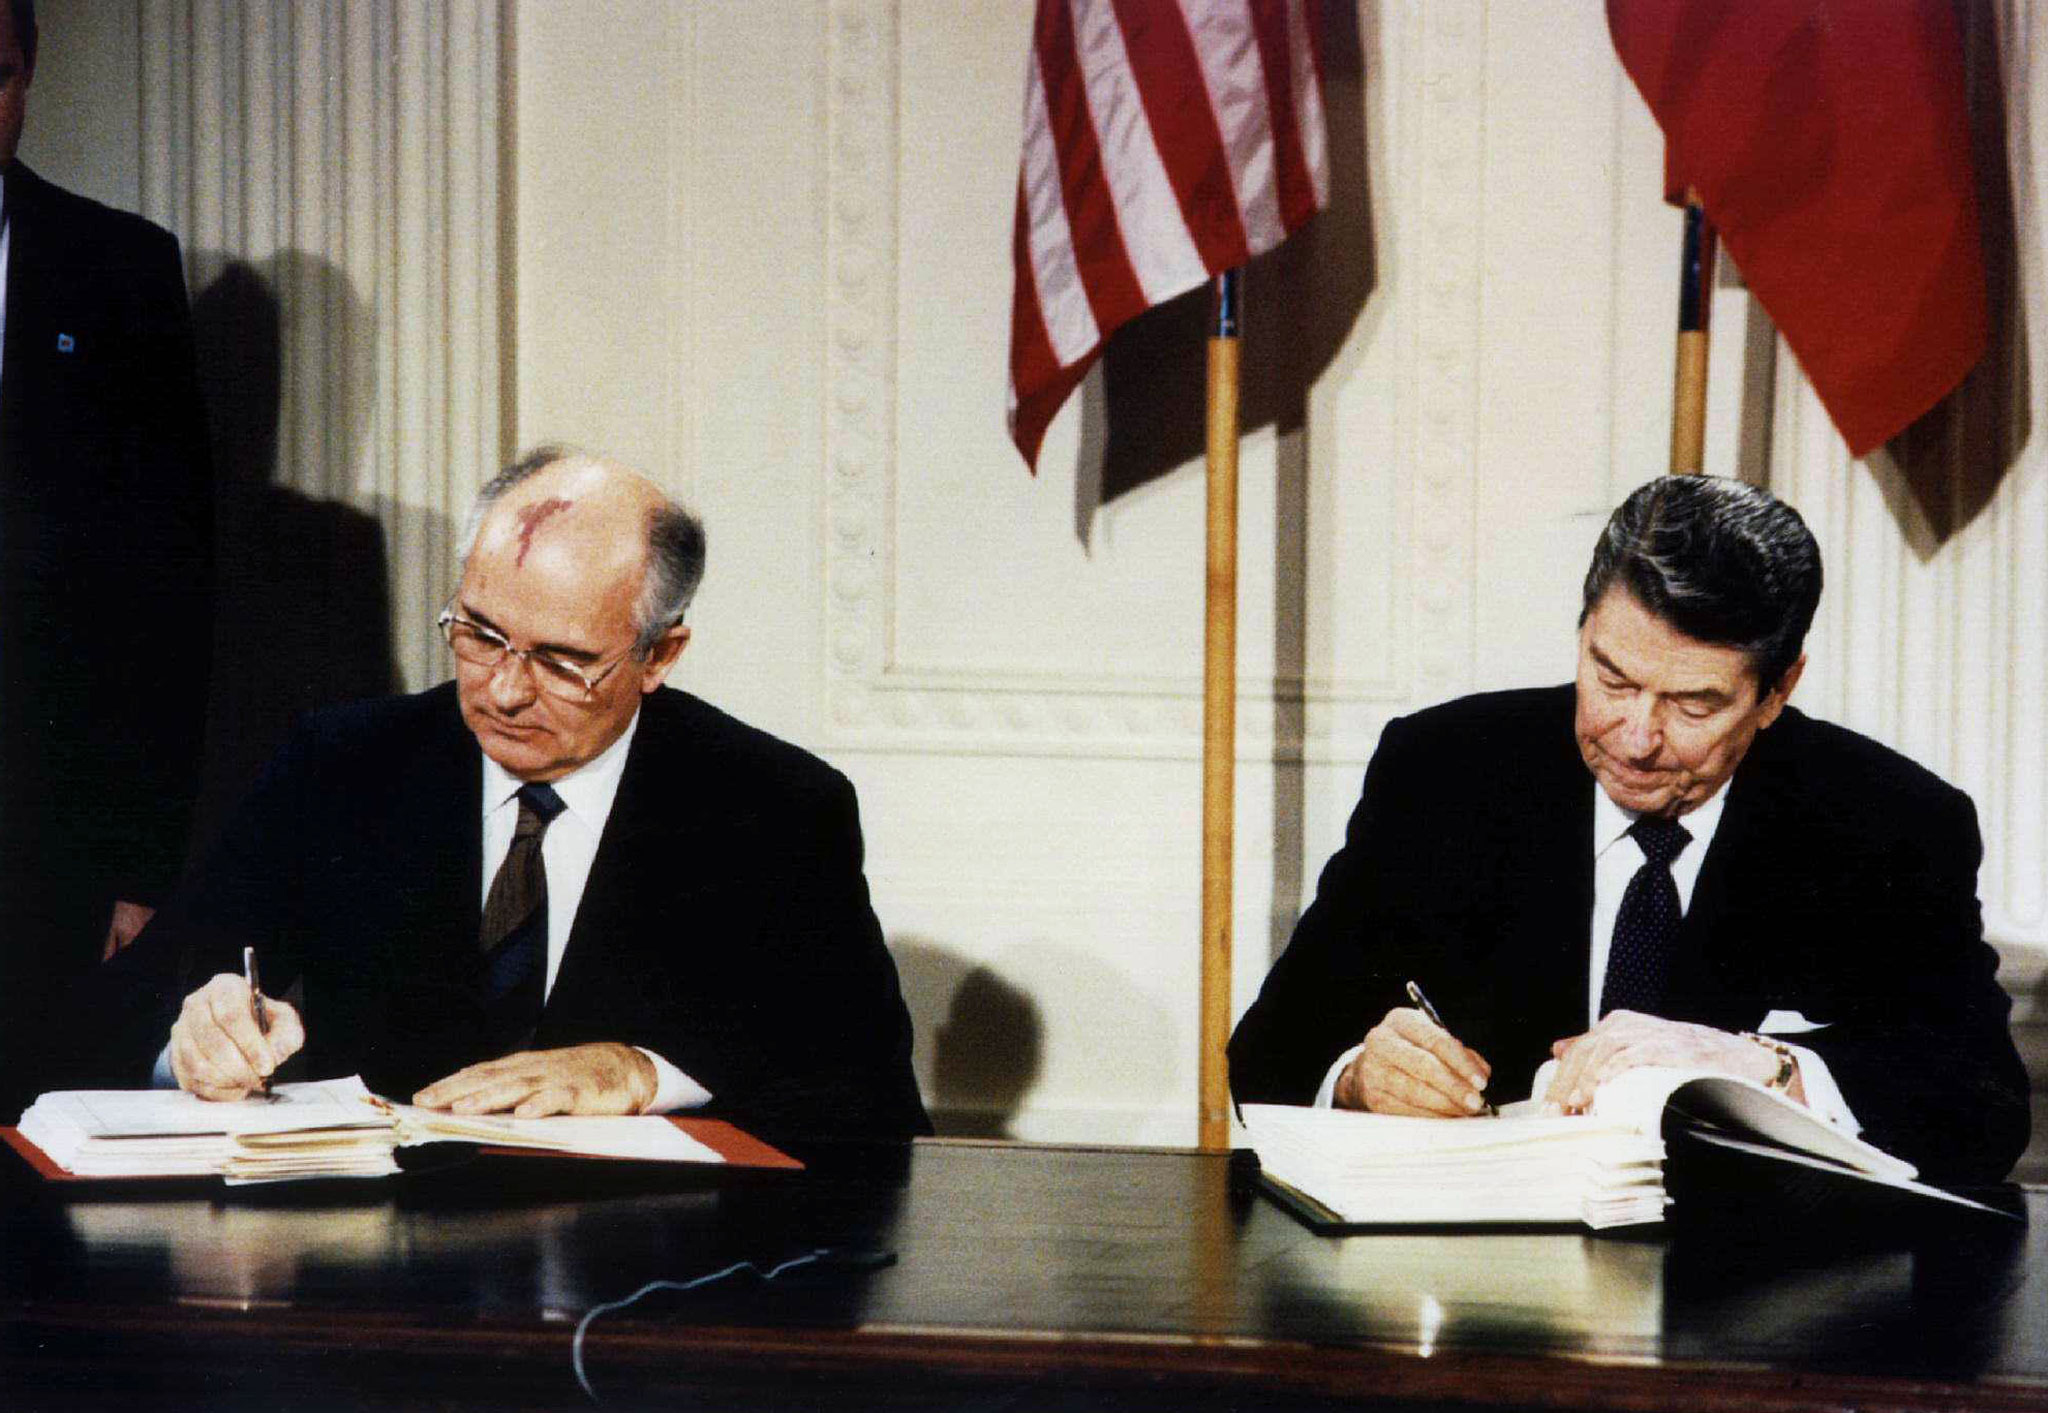 Mikhail Gorbachev, President of the Soviet Union, and President Reagan sign the Intermediate-Range Nuclear Forces (INF) treaty in the White House on Dec. 8, 1987.